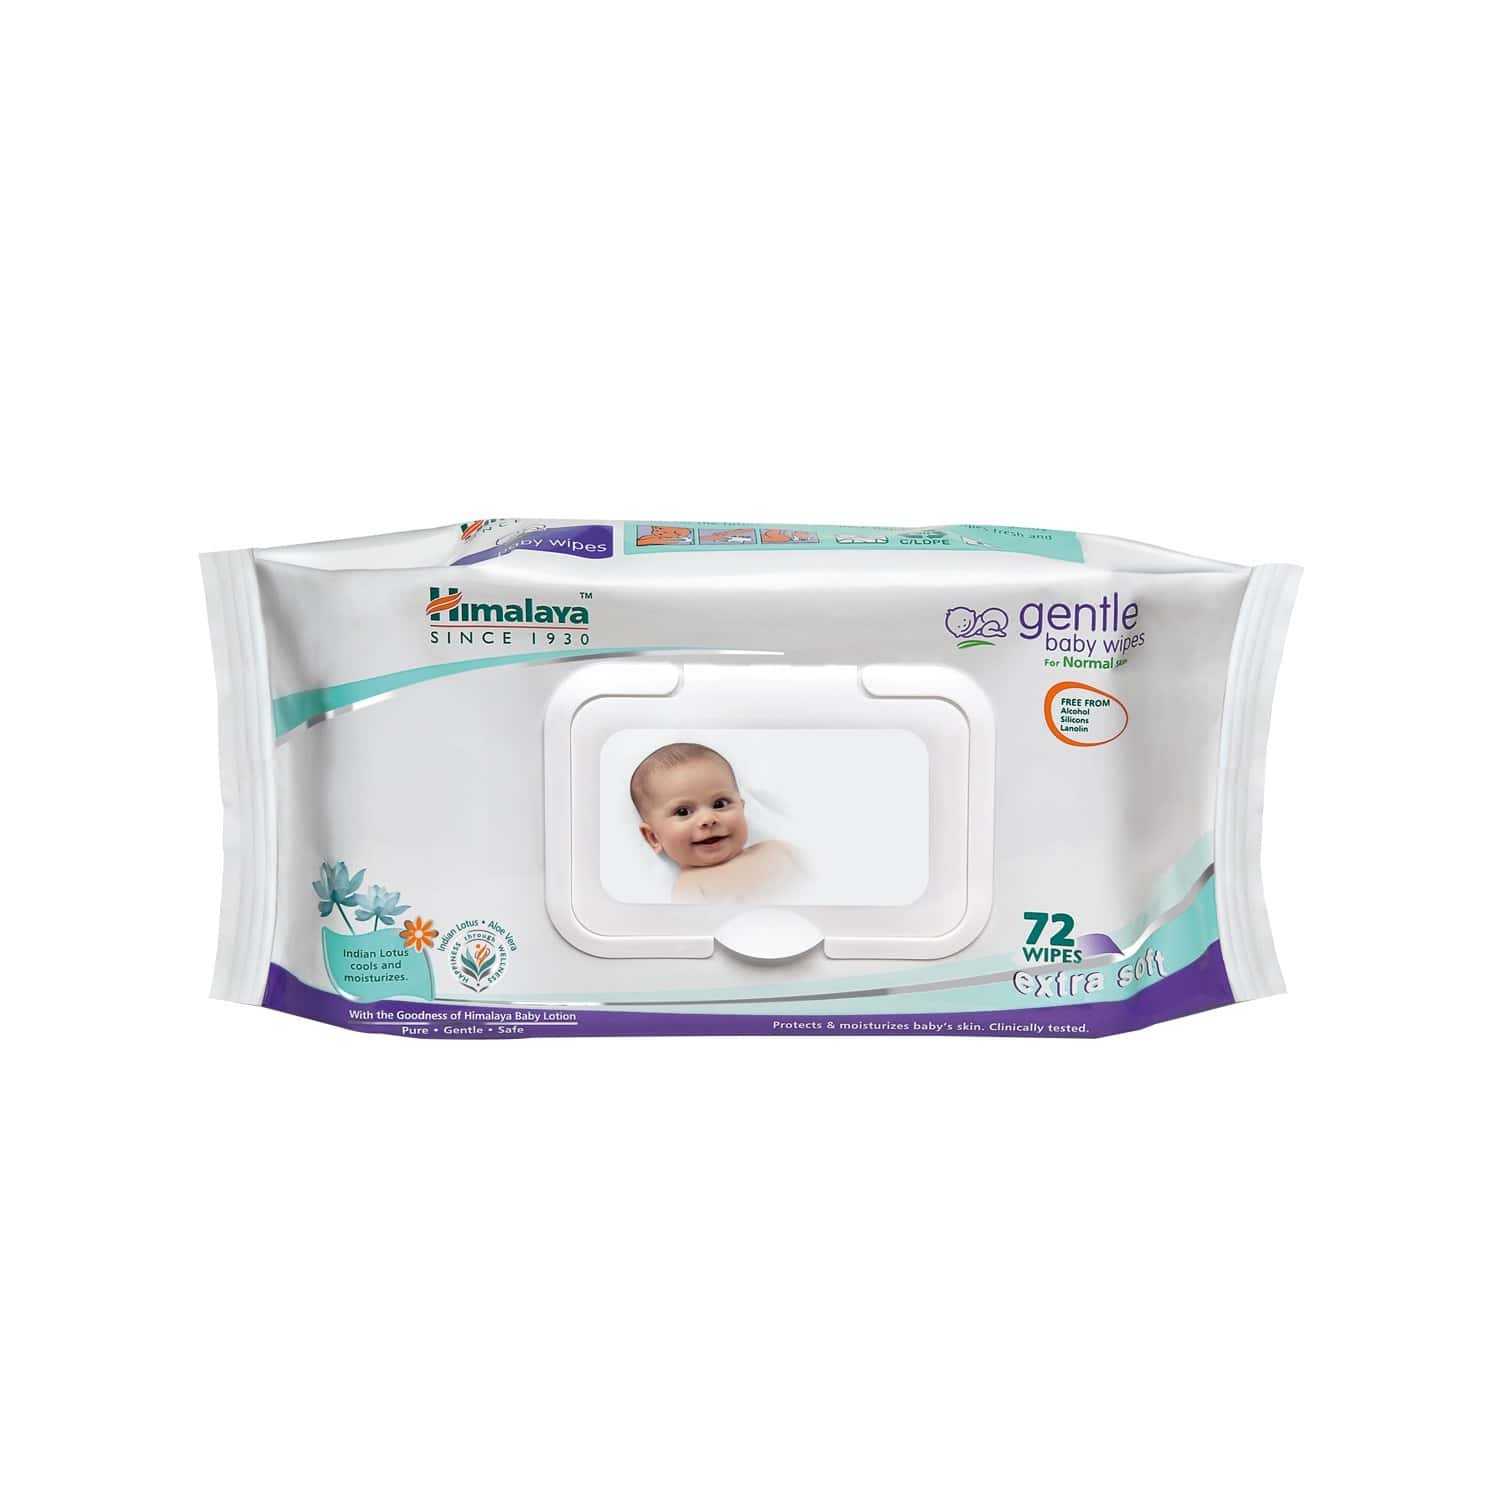 Himalaya Baby Wipes Packet Of 72 's